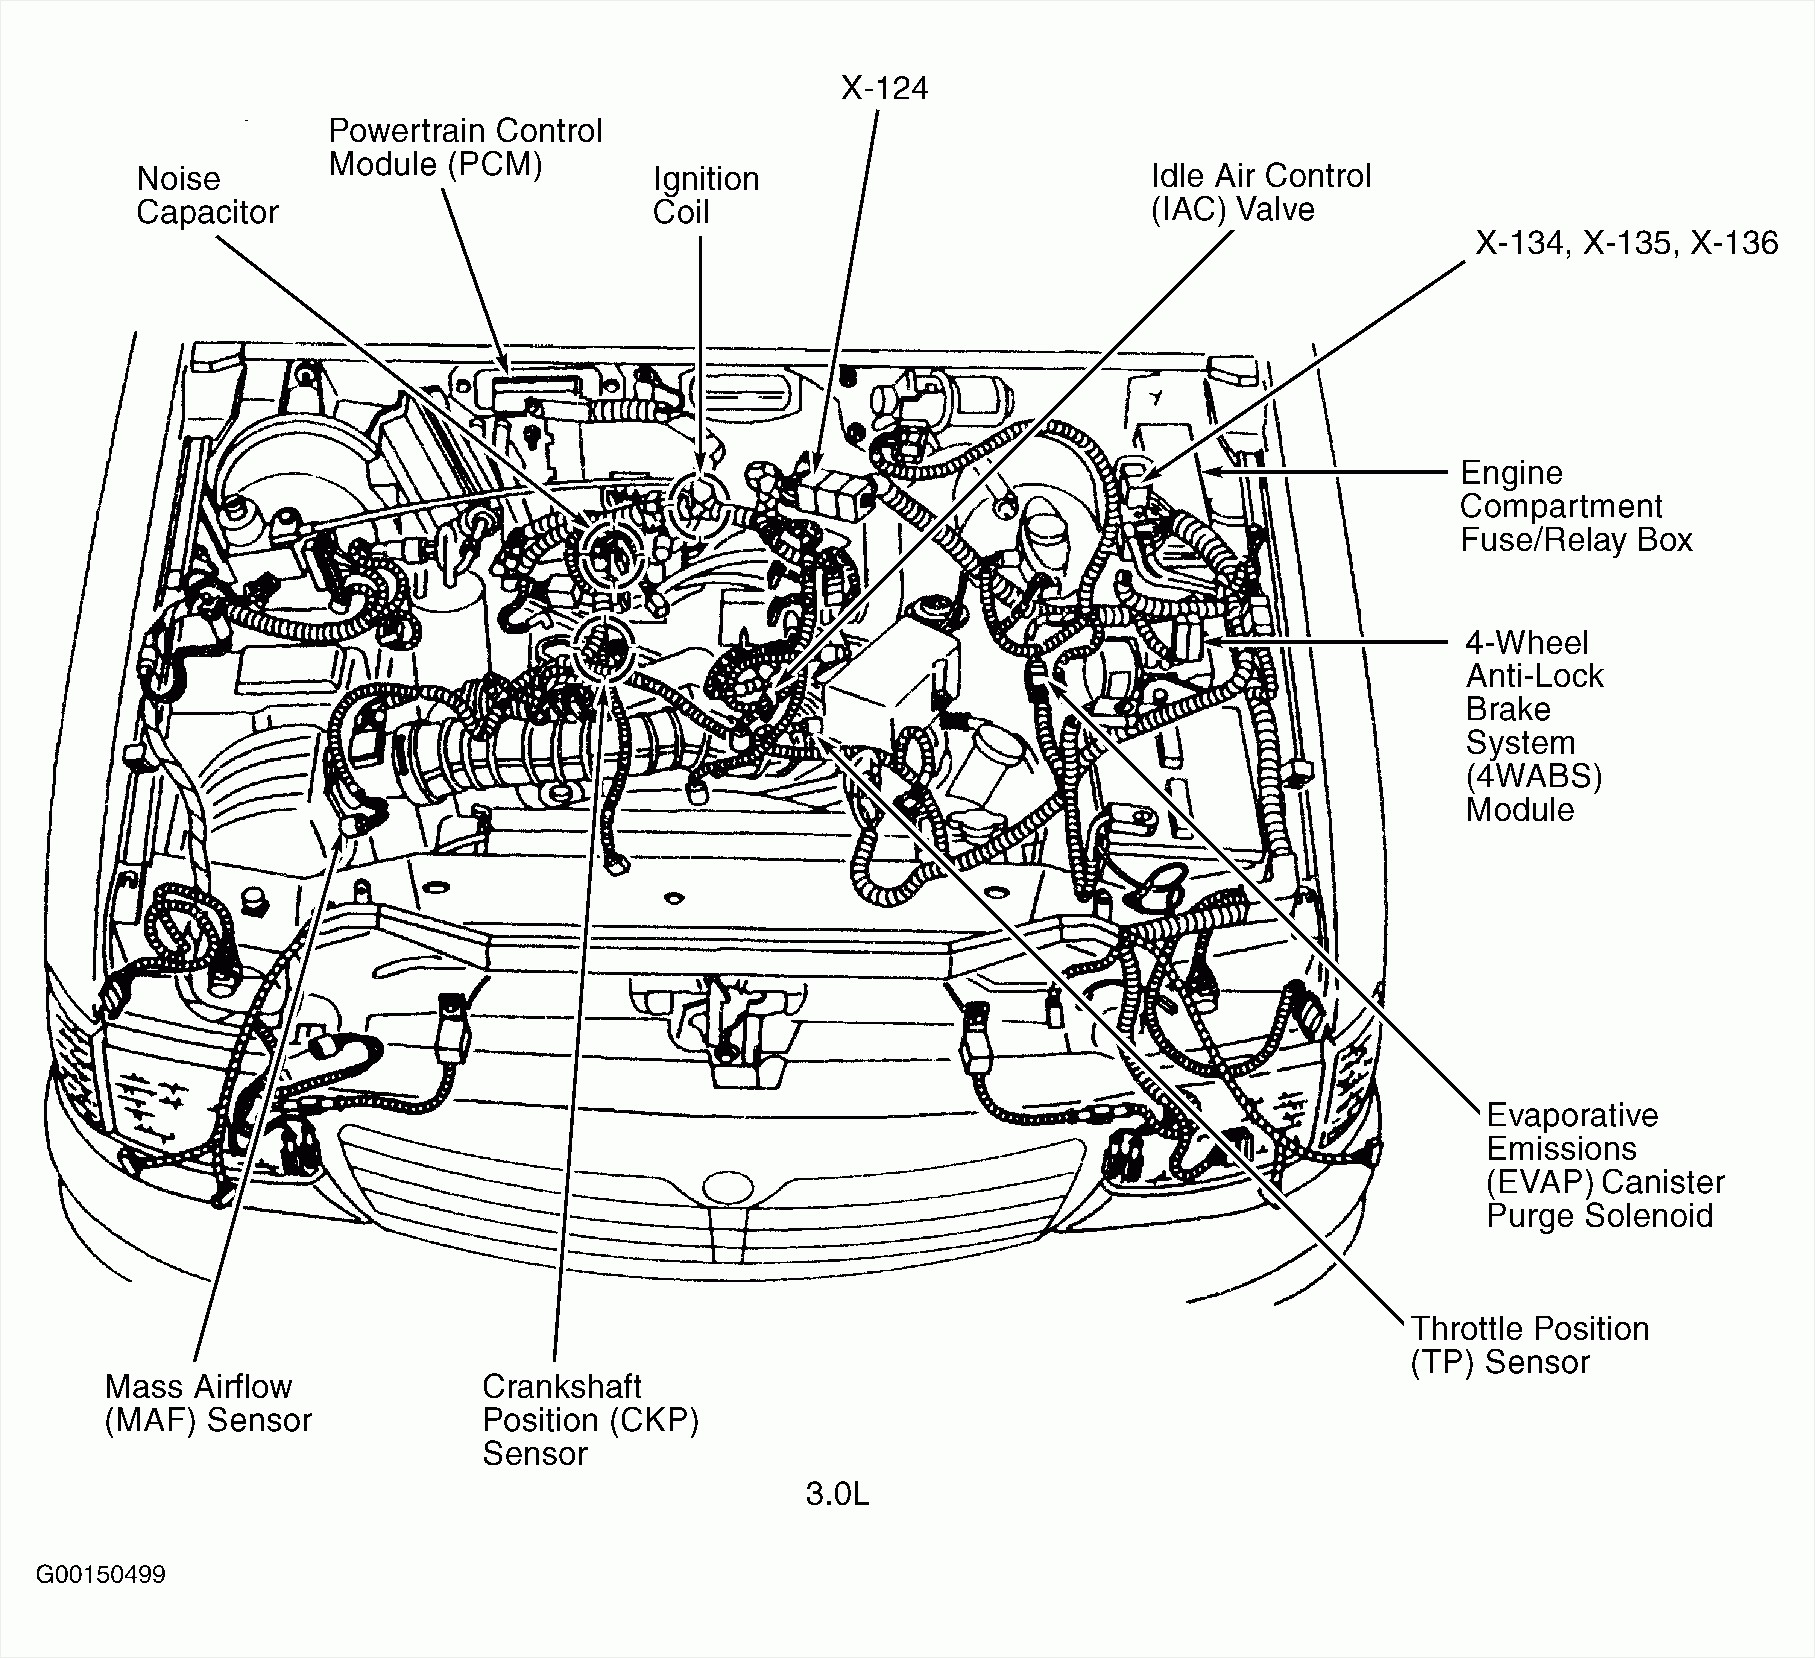 toyota 3 0 v6 engine wiring diagram toyota 3 0 v6 engine